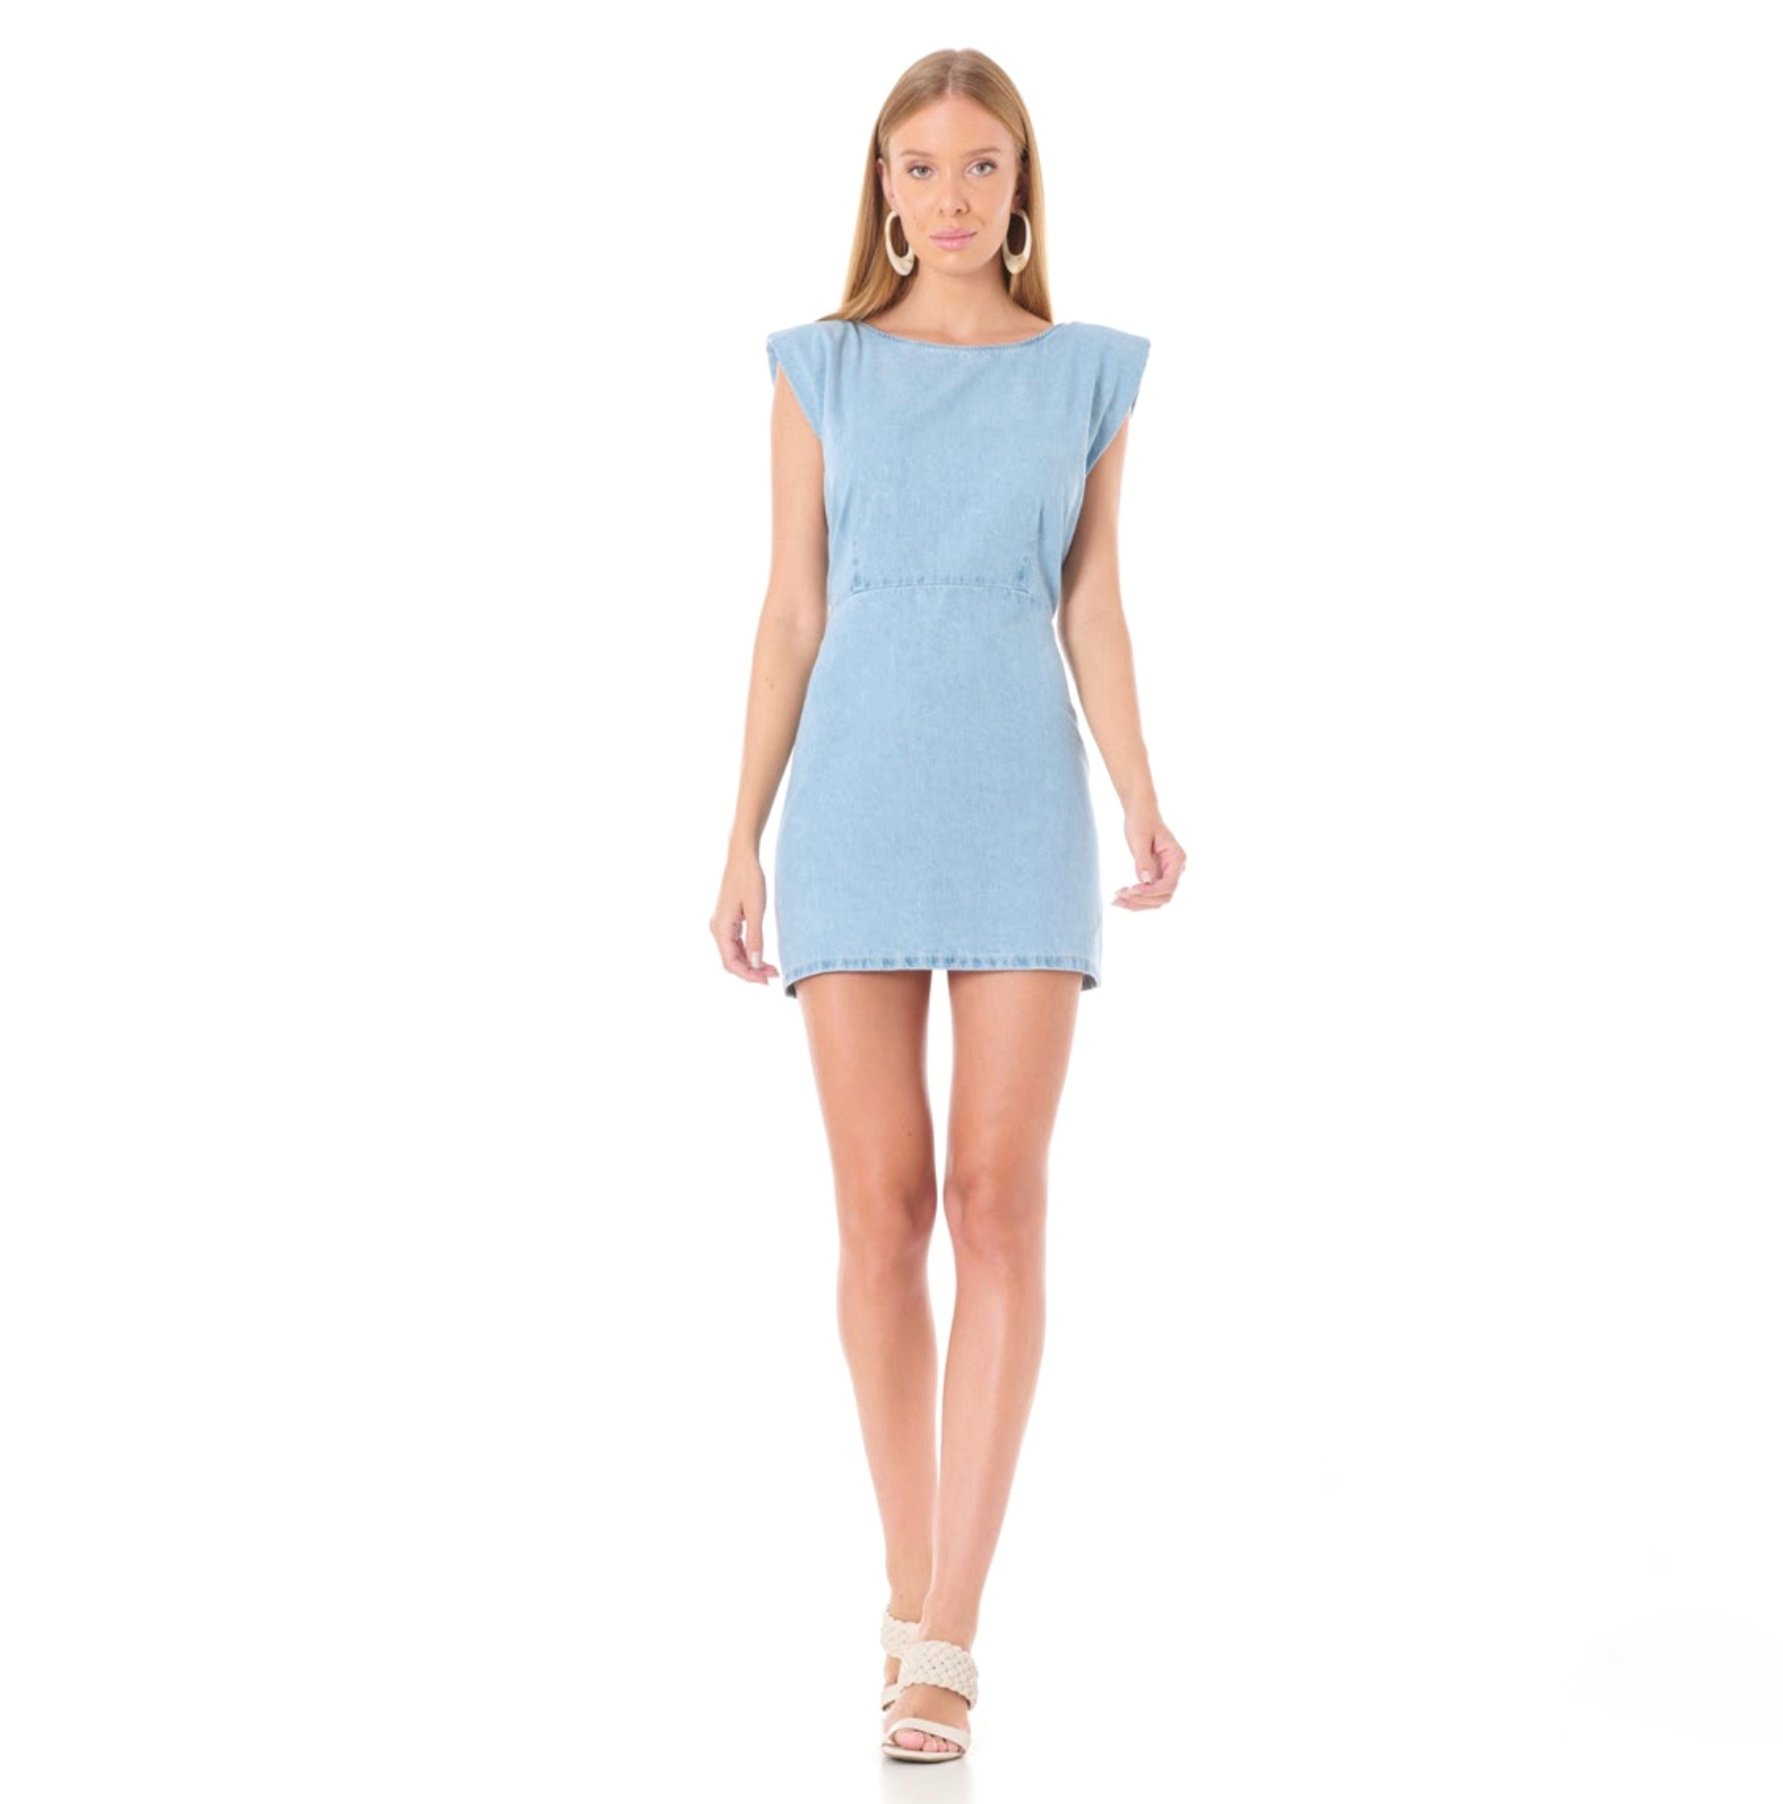 Vestido Sly jeans curto muscle tee